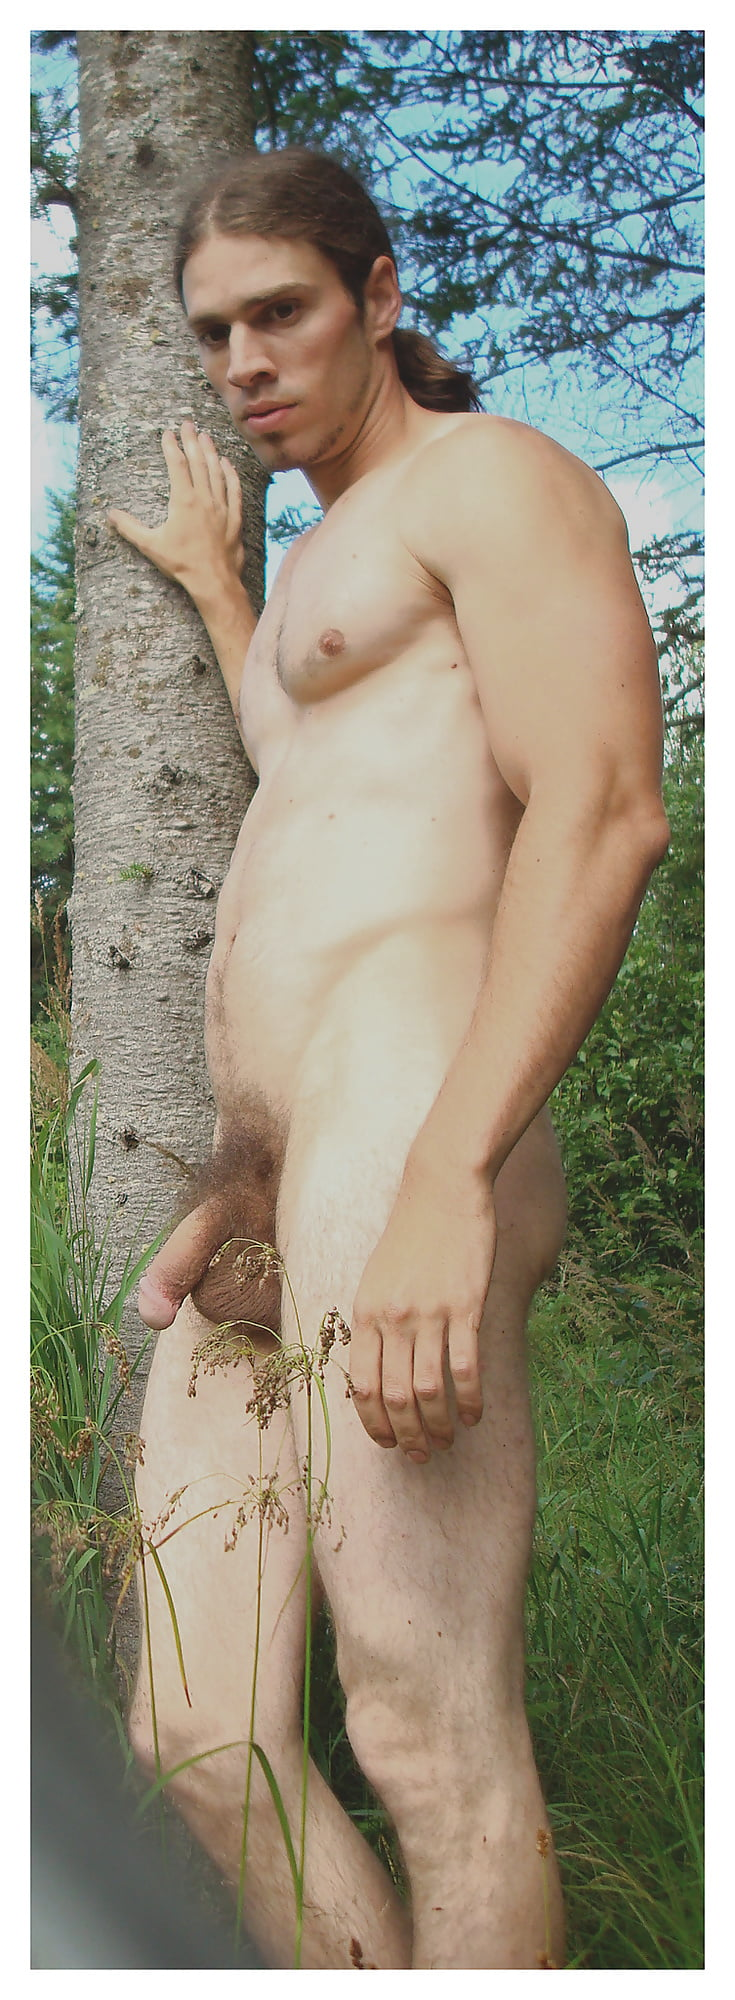 Vintage Golden Teen With Circumcised Hairy Penis - 2 Pics -1882